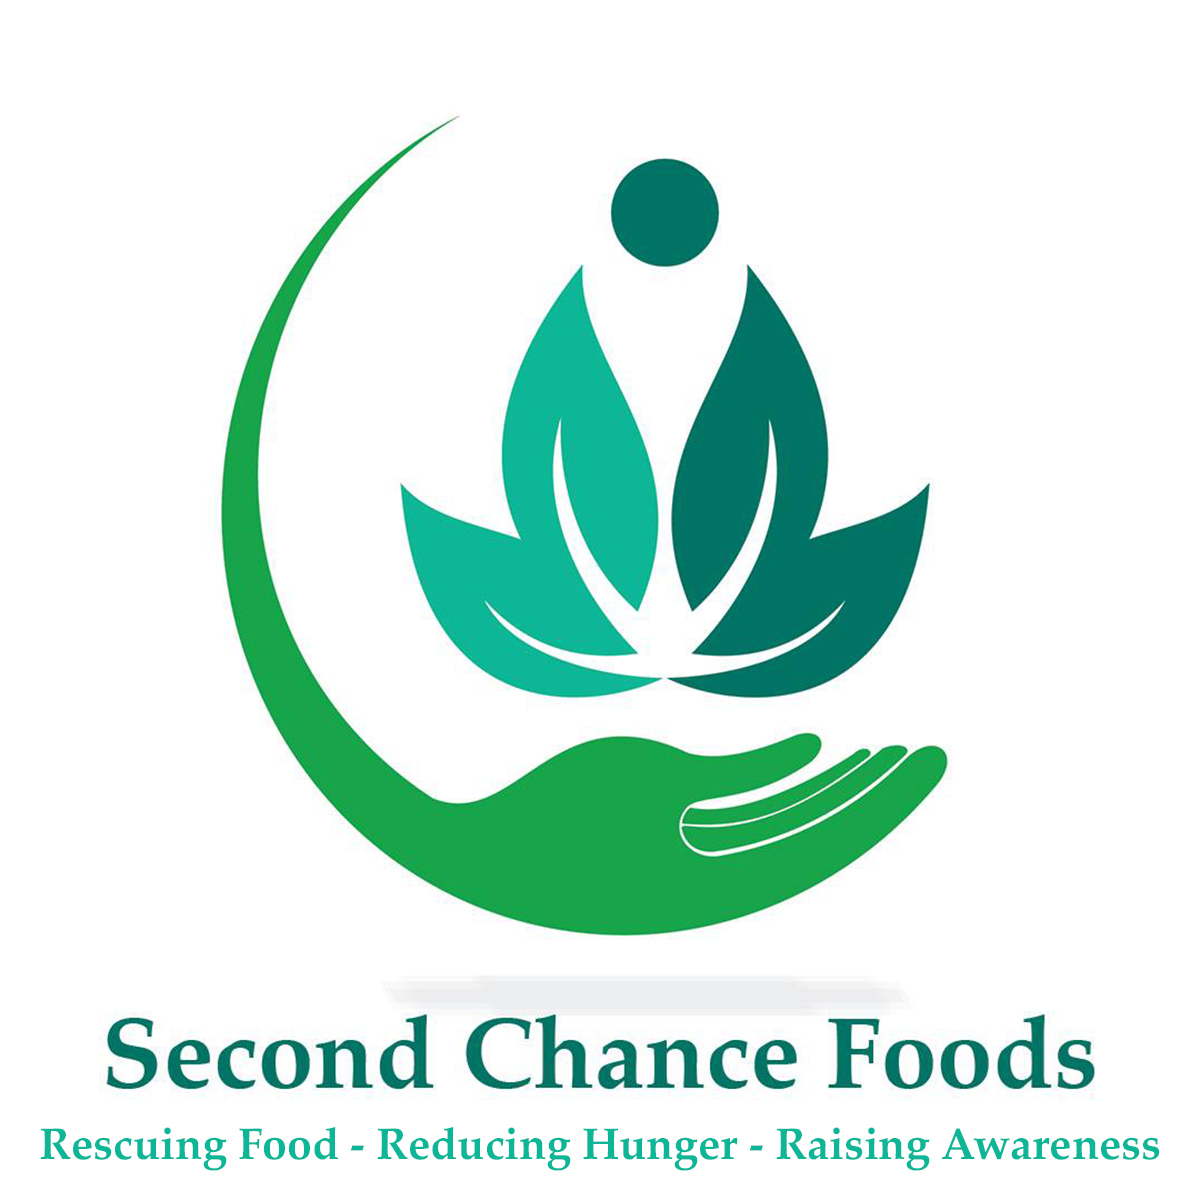 Second Chance Food's logo